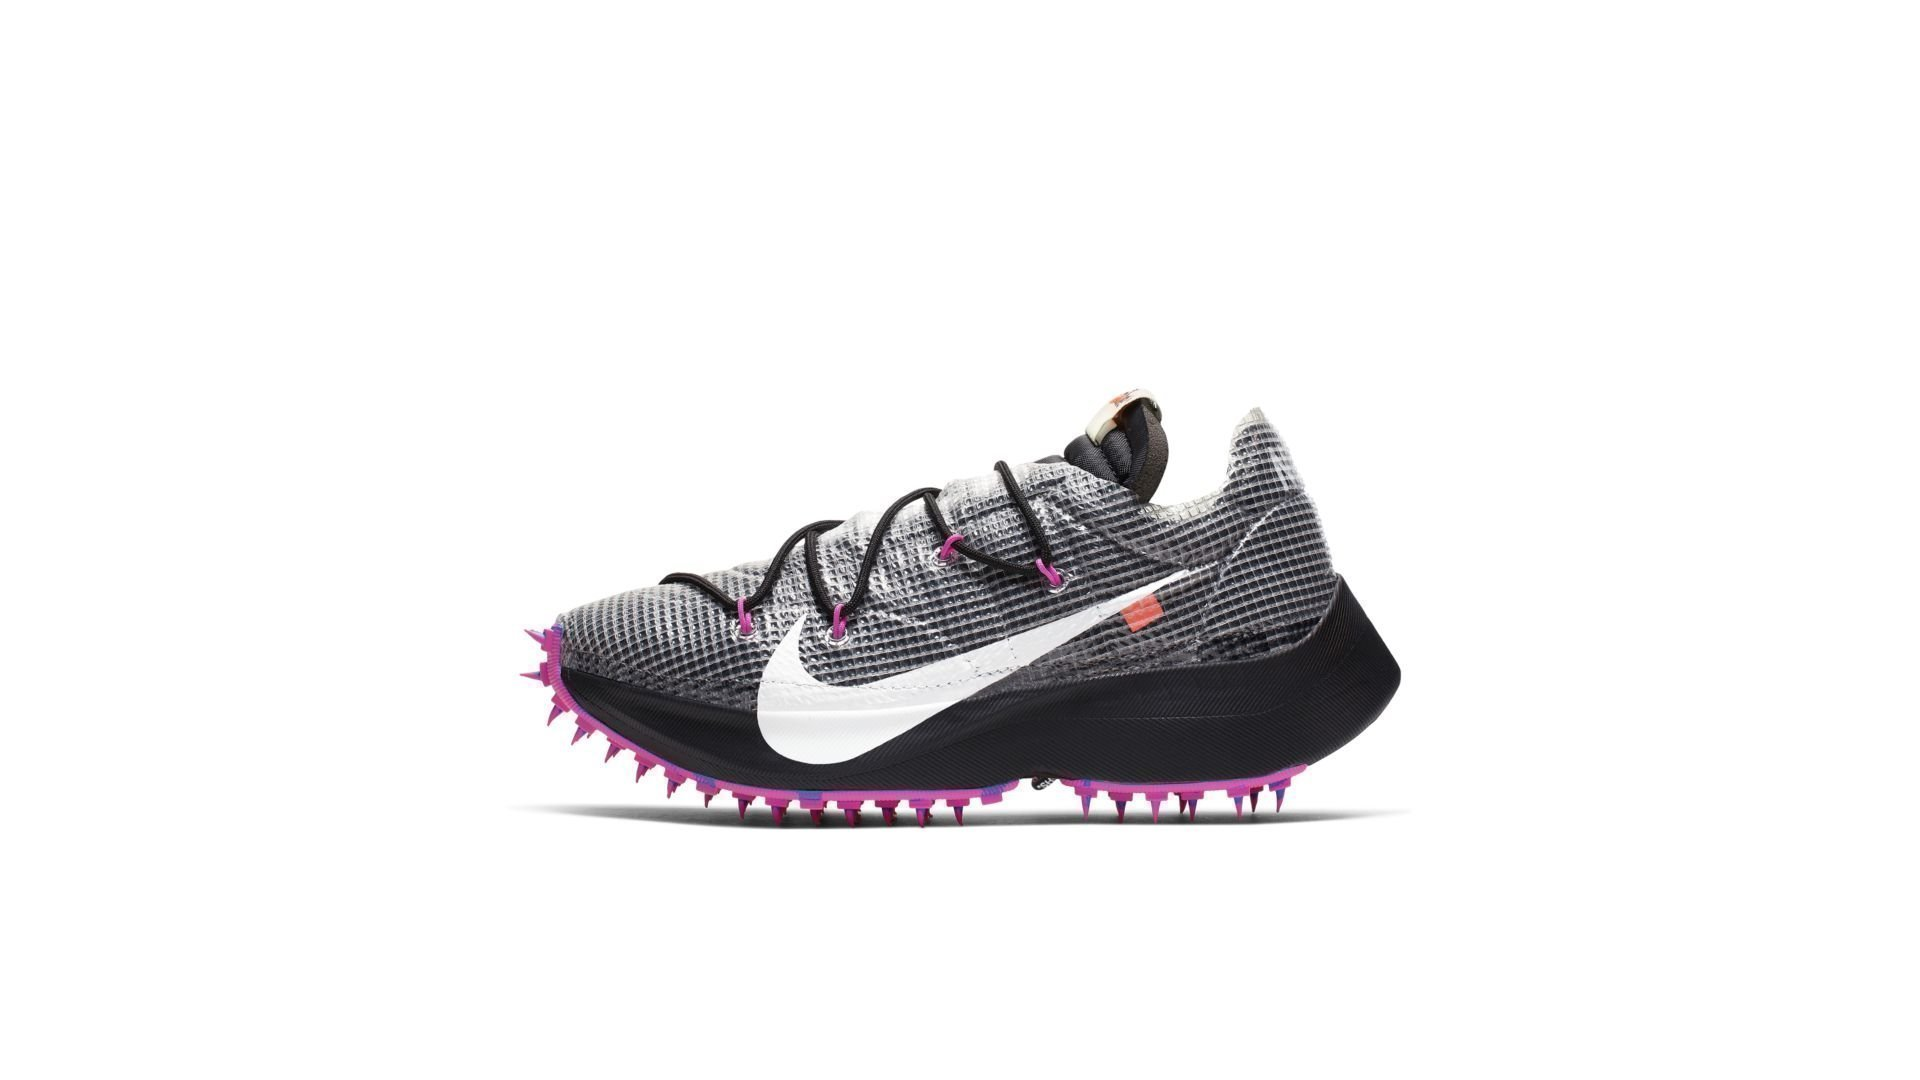 Nike Vapor Street Off-White Black Laser Fuchsia (W) (CD8178-001)